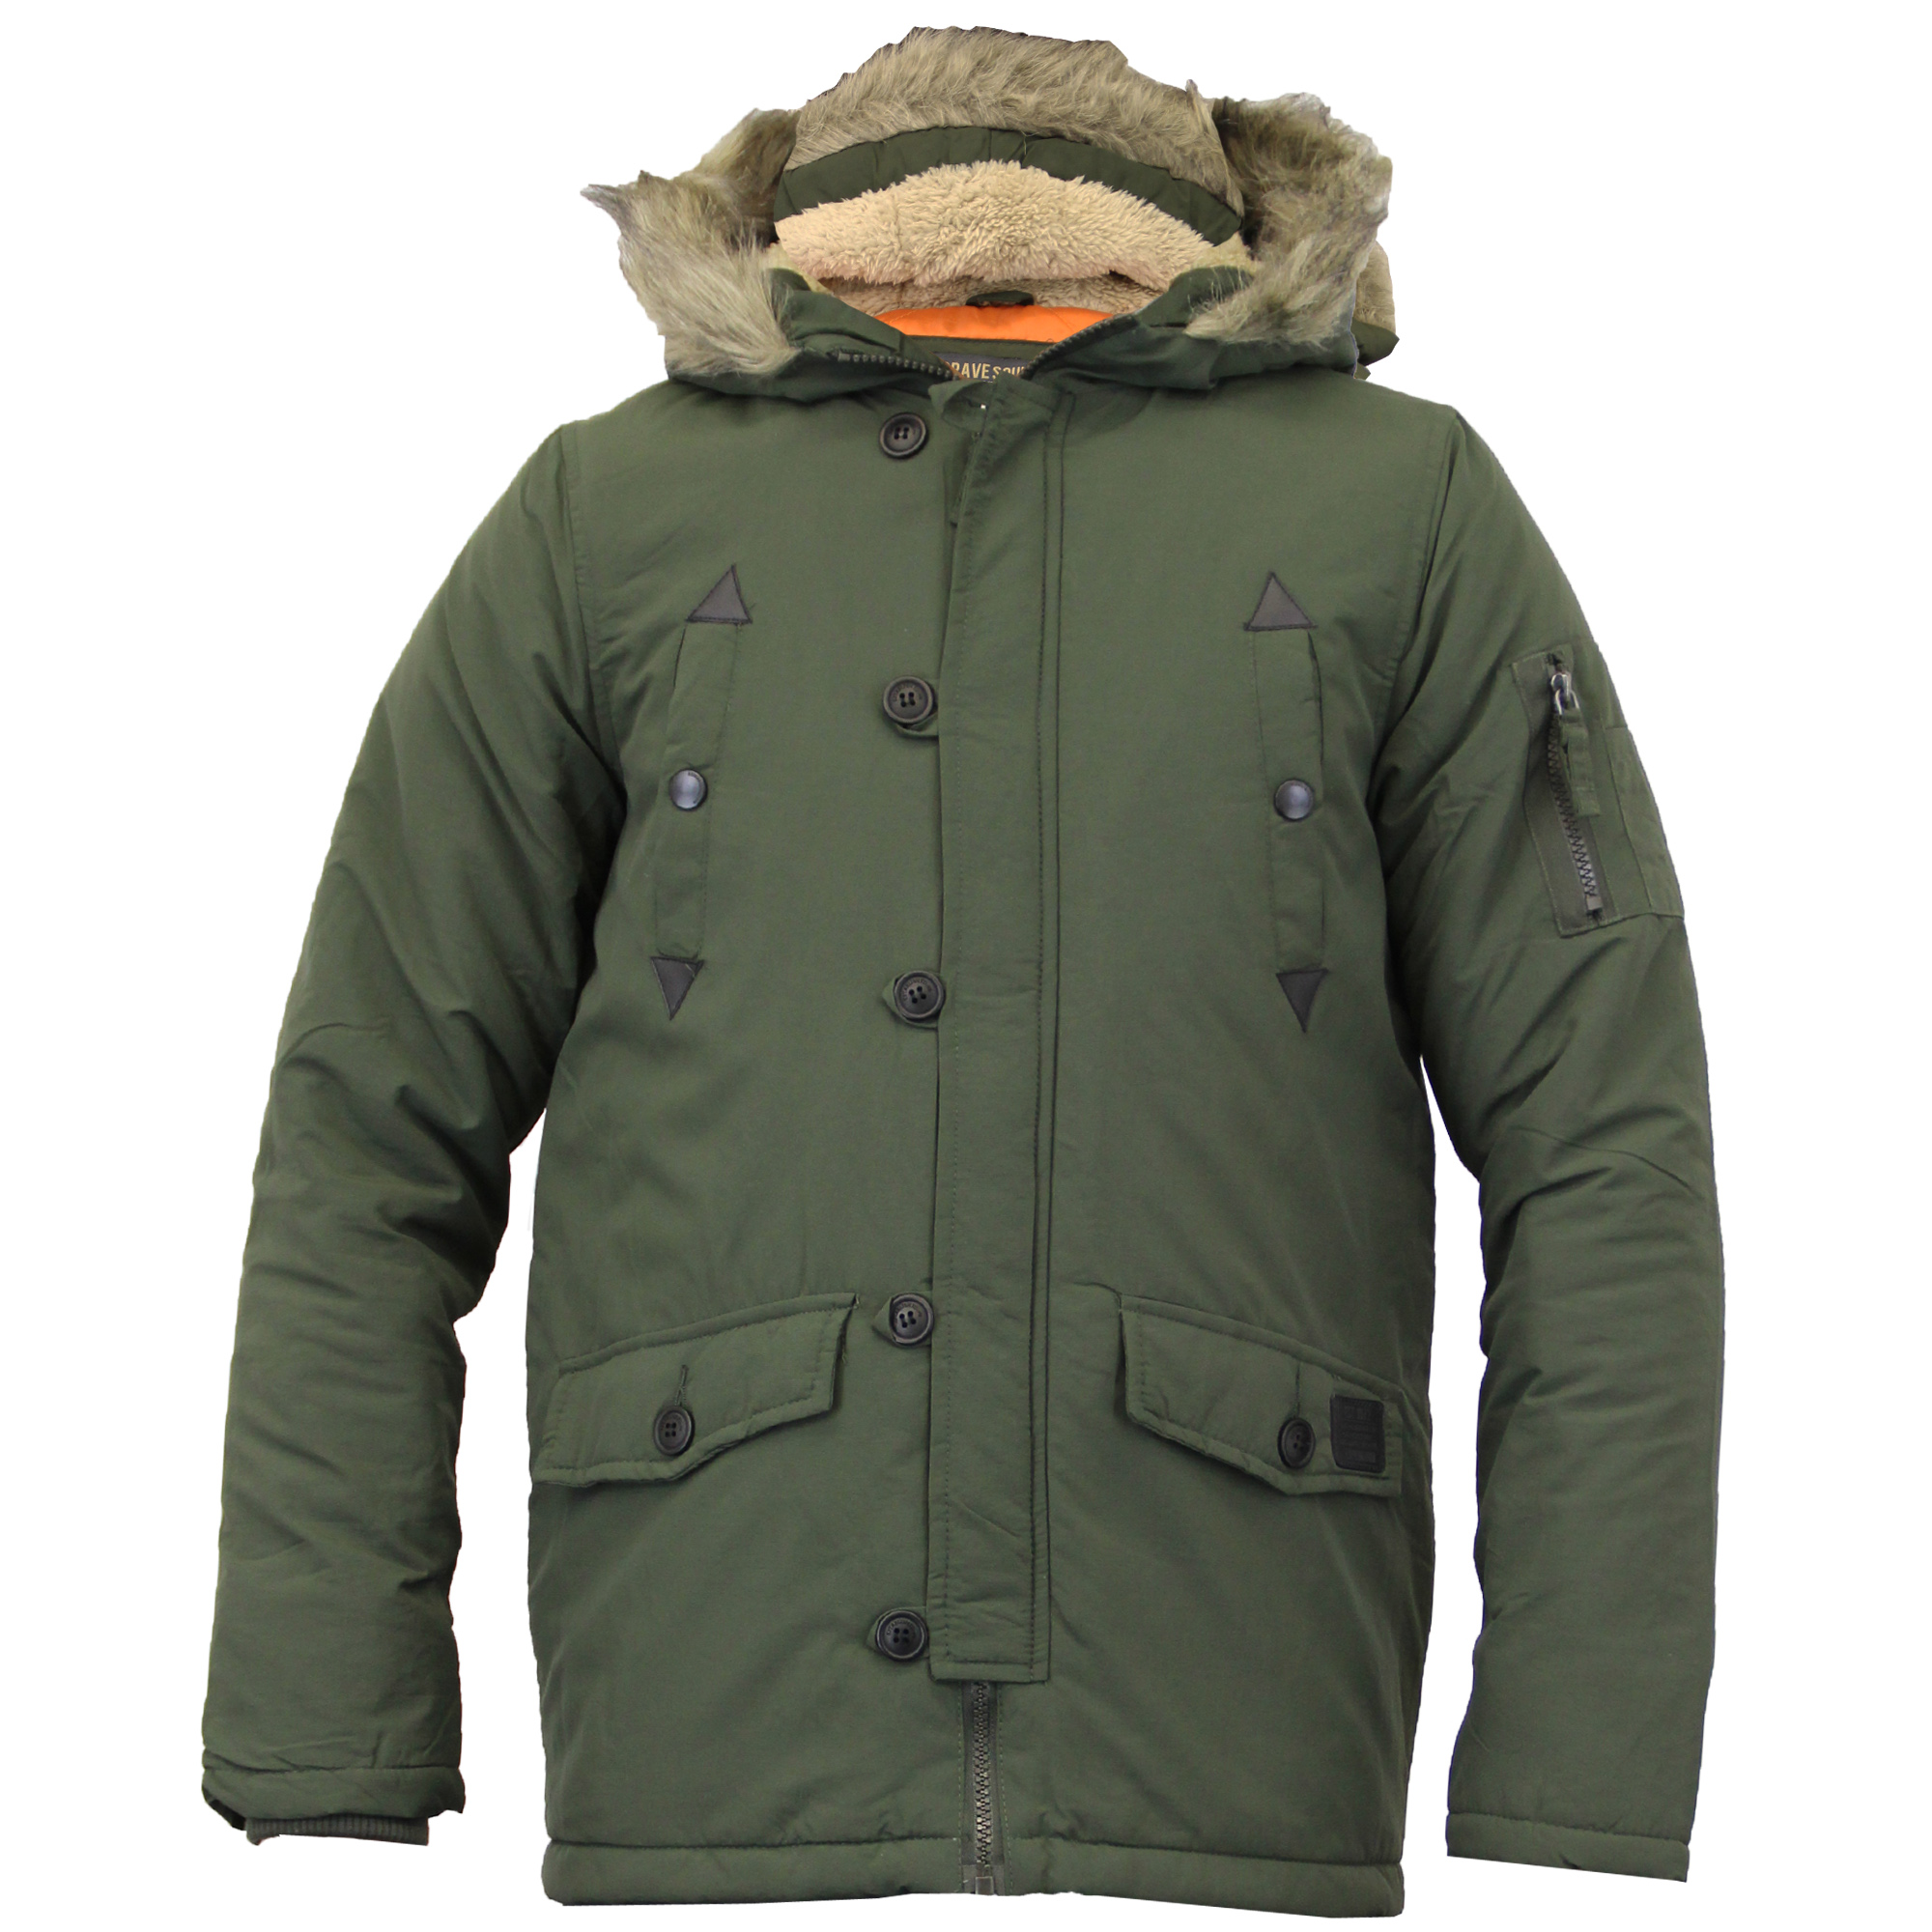 The latest and the lowest prices on Women Coat from funon.ml - Fast, Safe & Seasonal Sale· Huge Selection· Seasonal Specials· Low Prices.